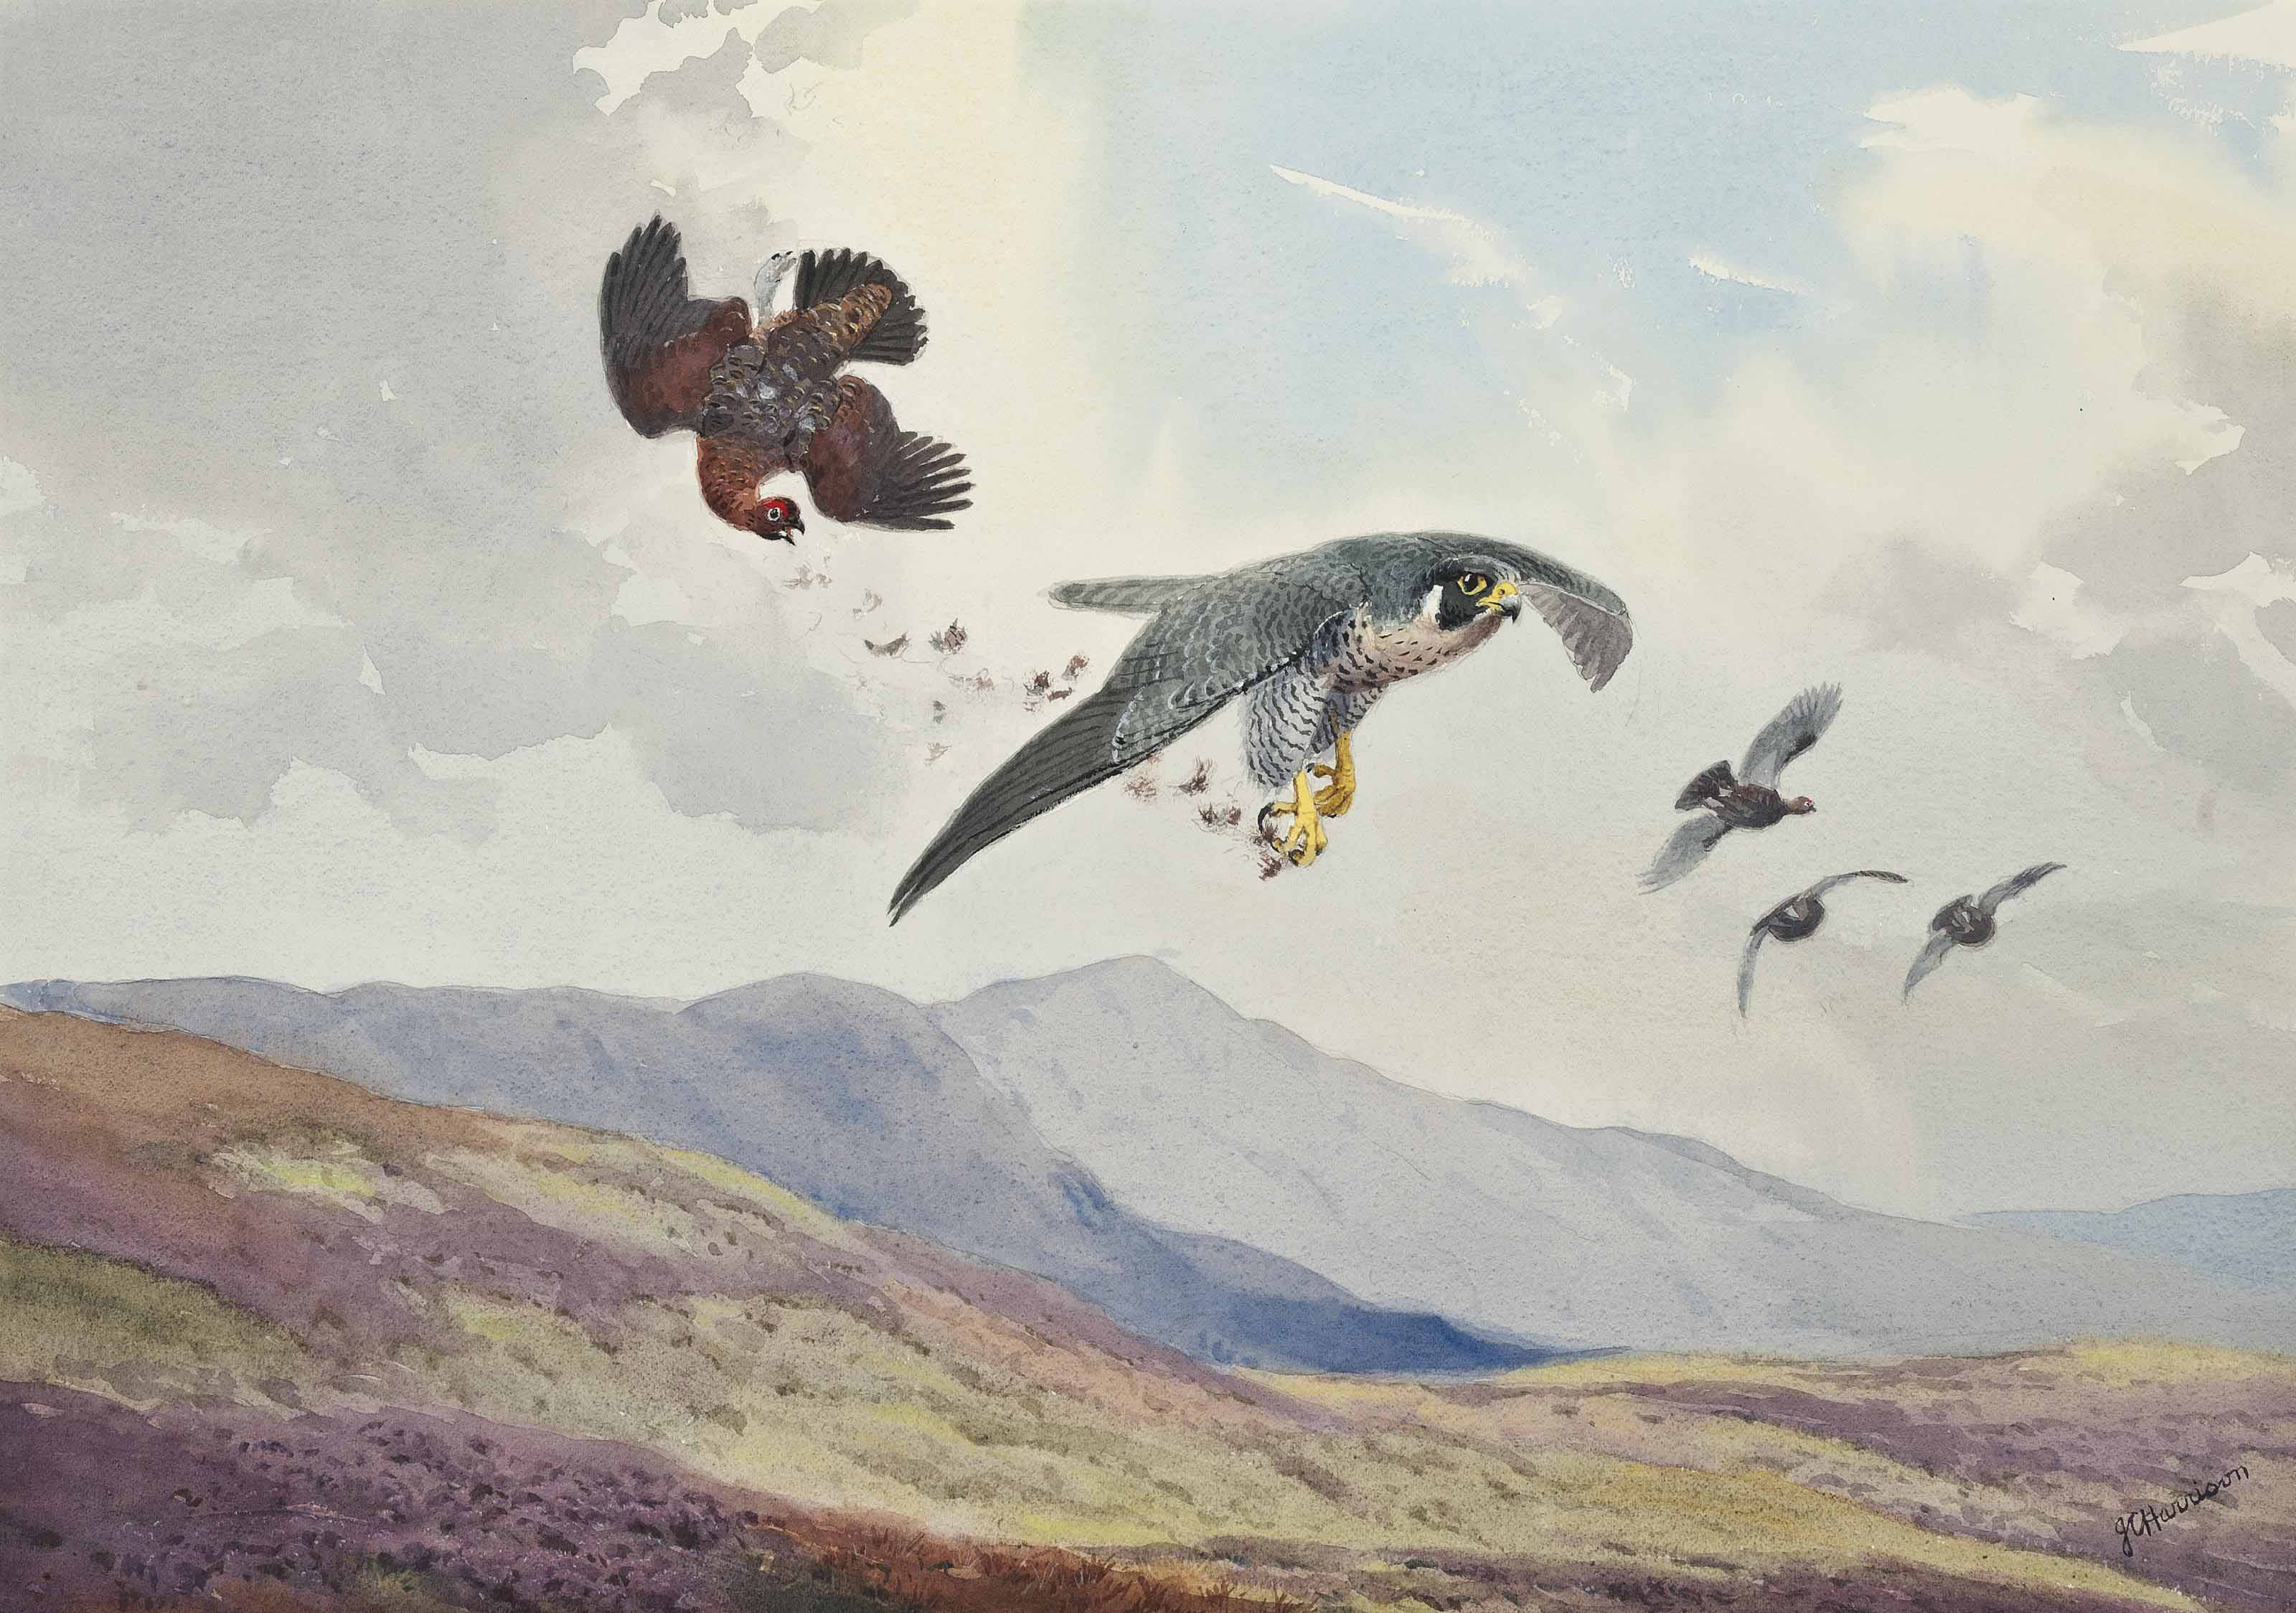 A peregrine falcon striking a grouse in flight